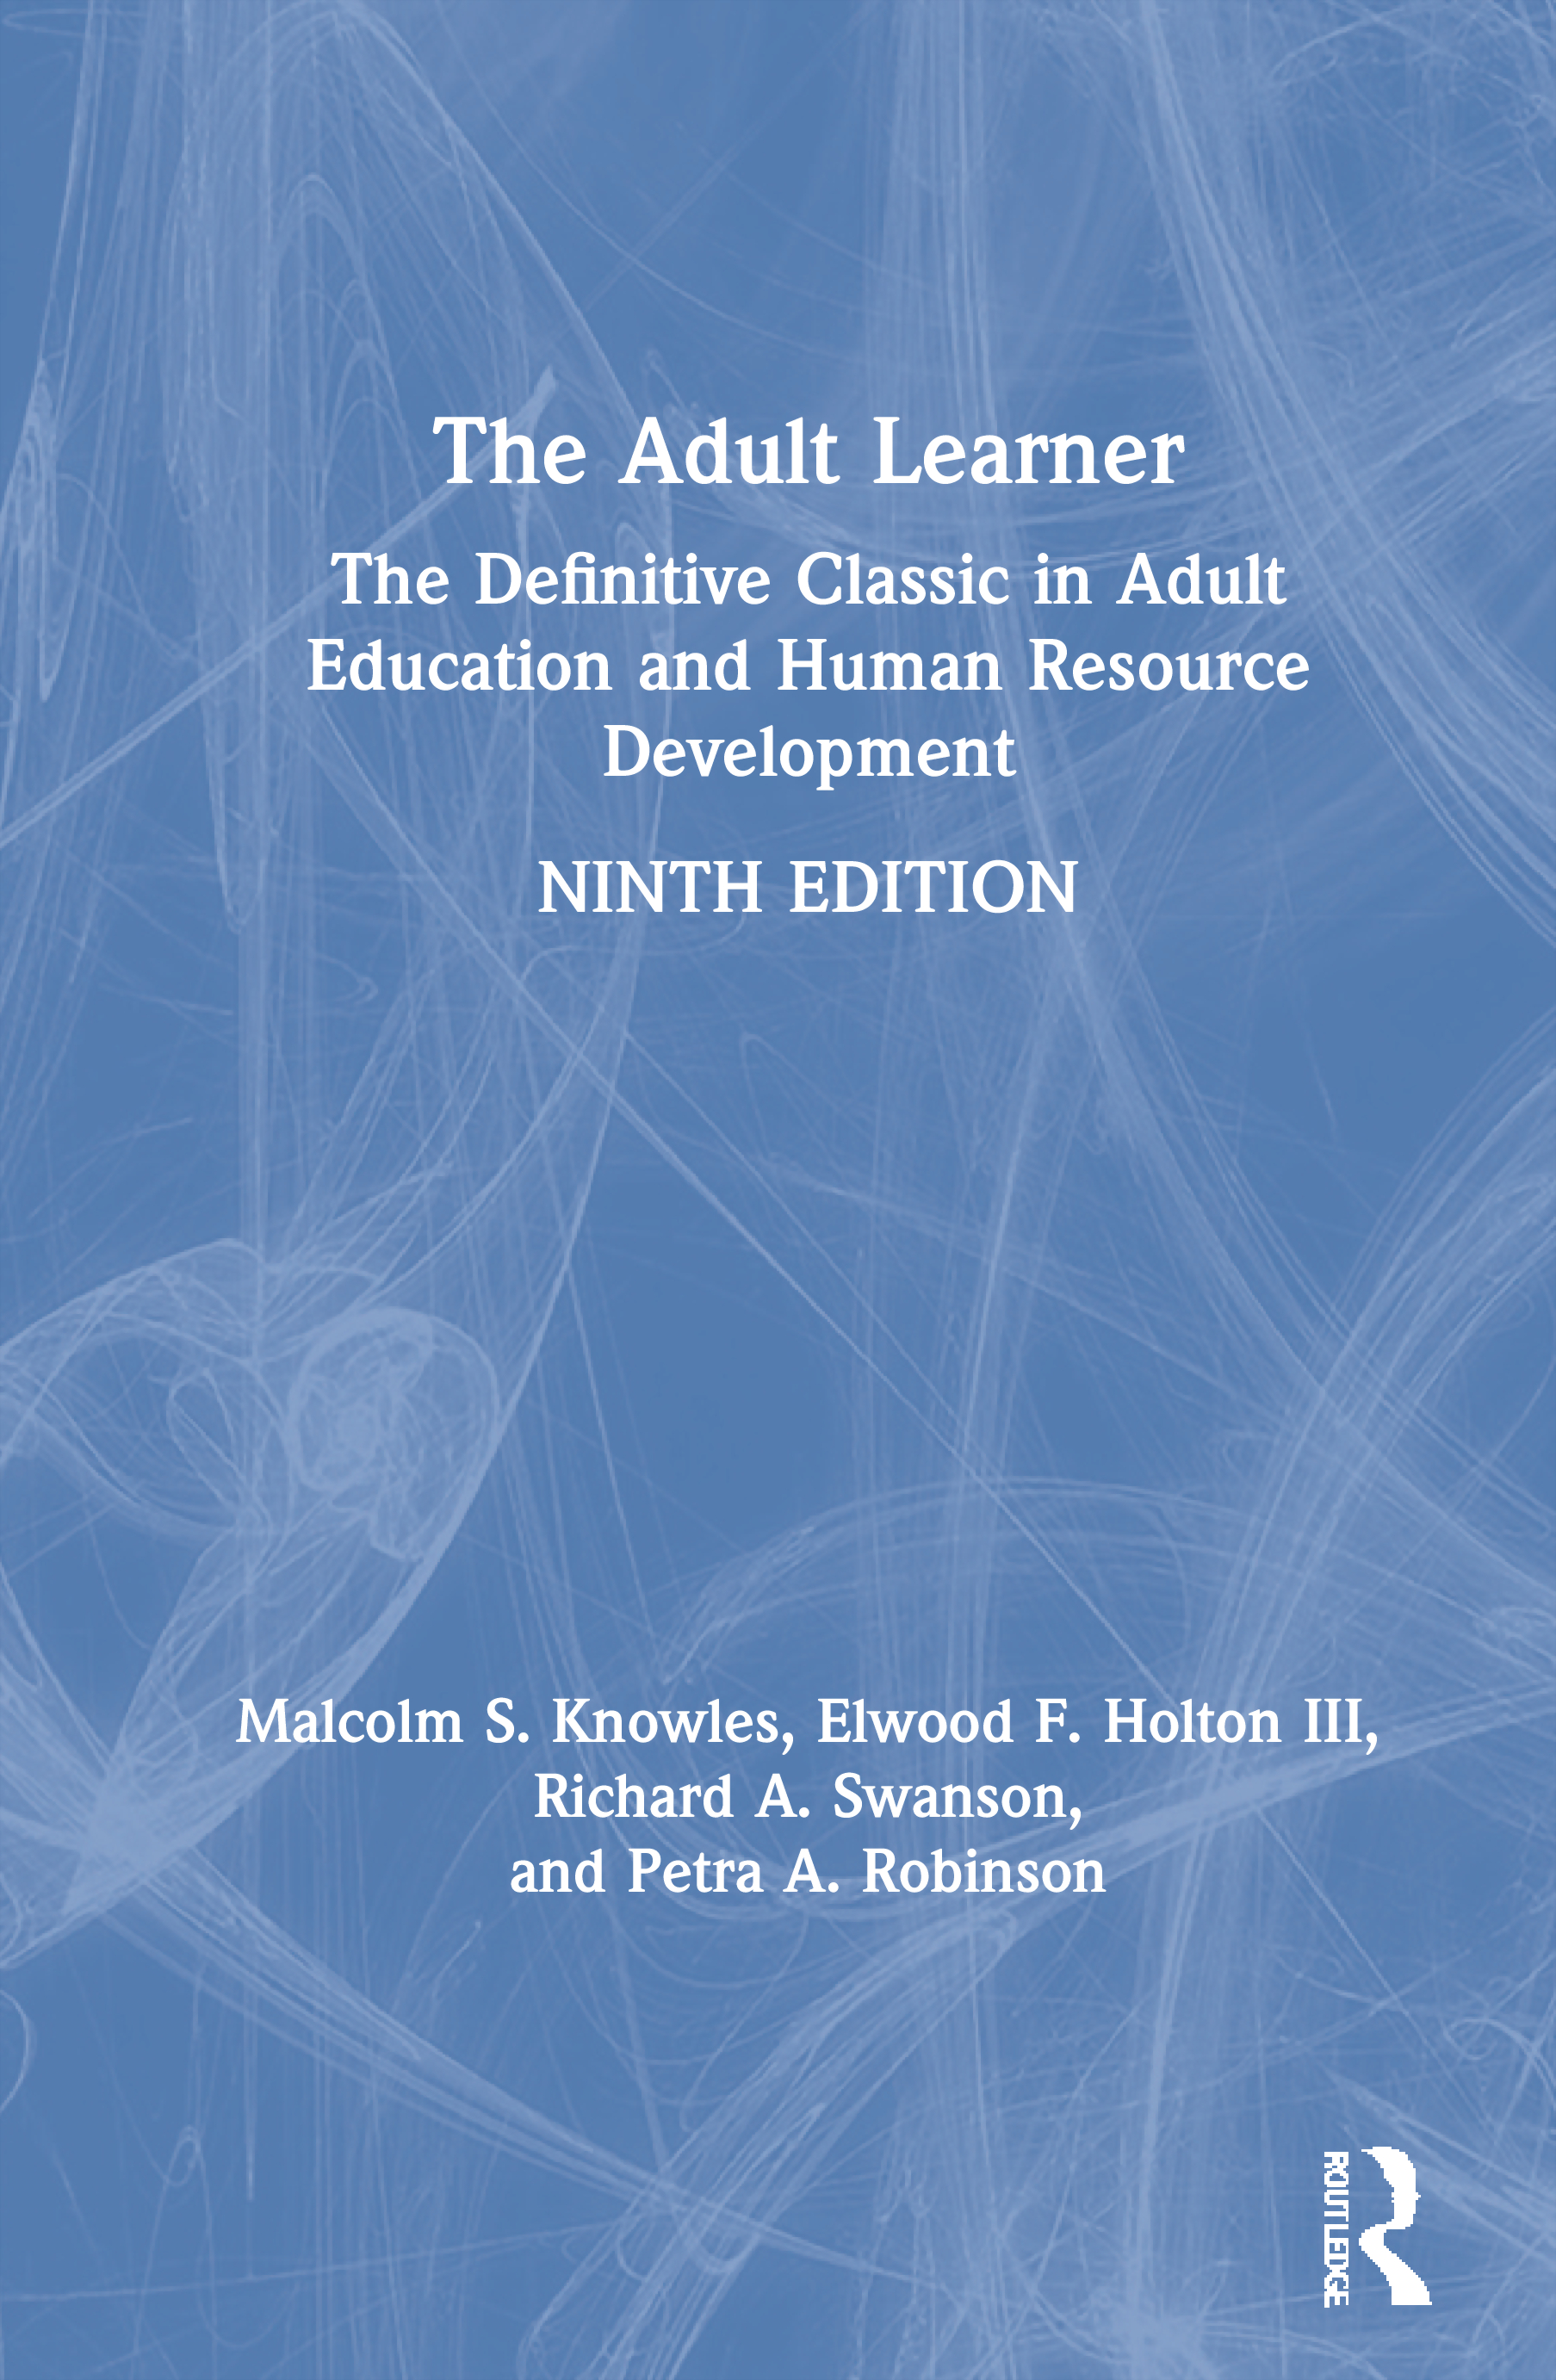 The Adult Learner: The Definitive Classic in Adult Education and Human Resource Development book cover